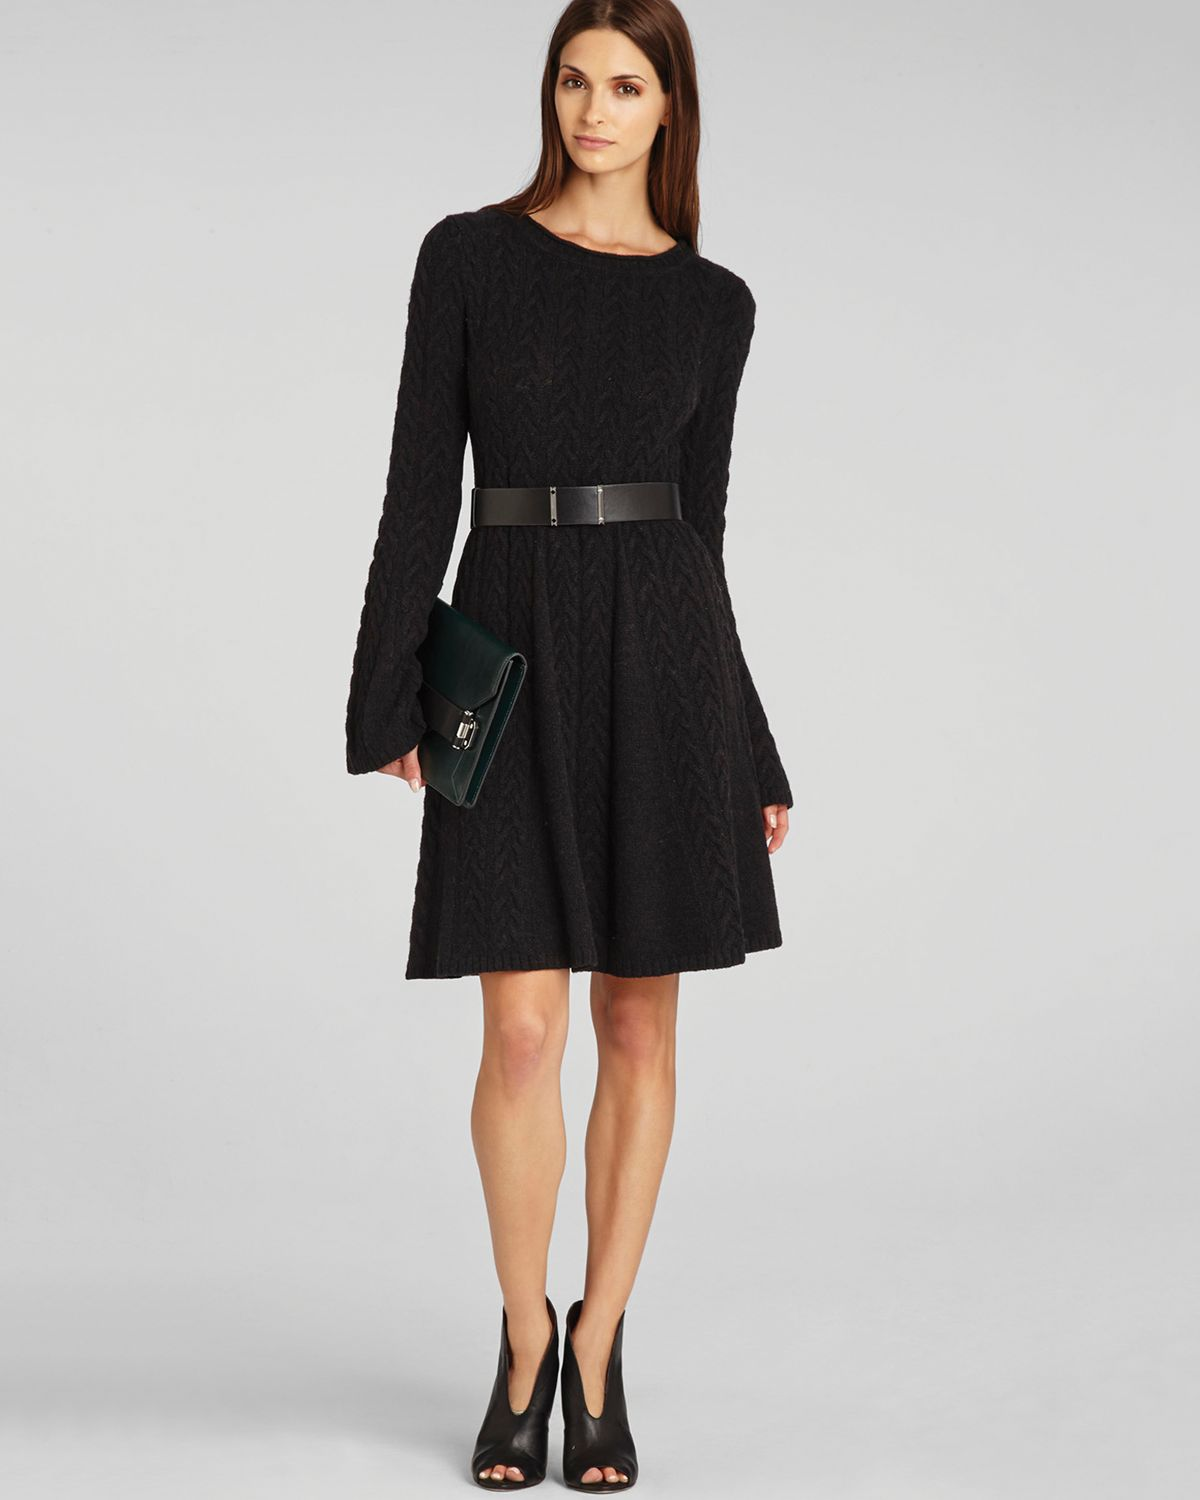 BCBGMAXAZRIA Sweater Dress - Hoshi Cabled | Bloomingdale's